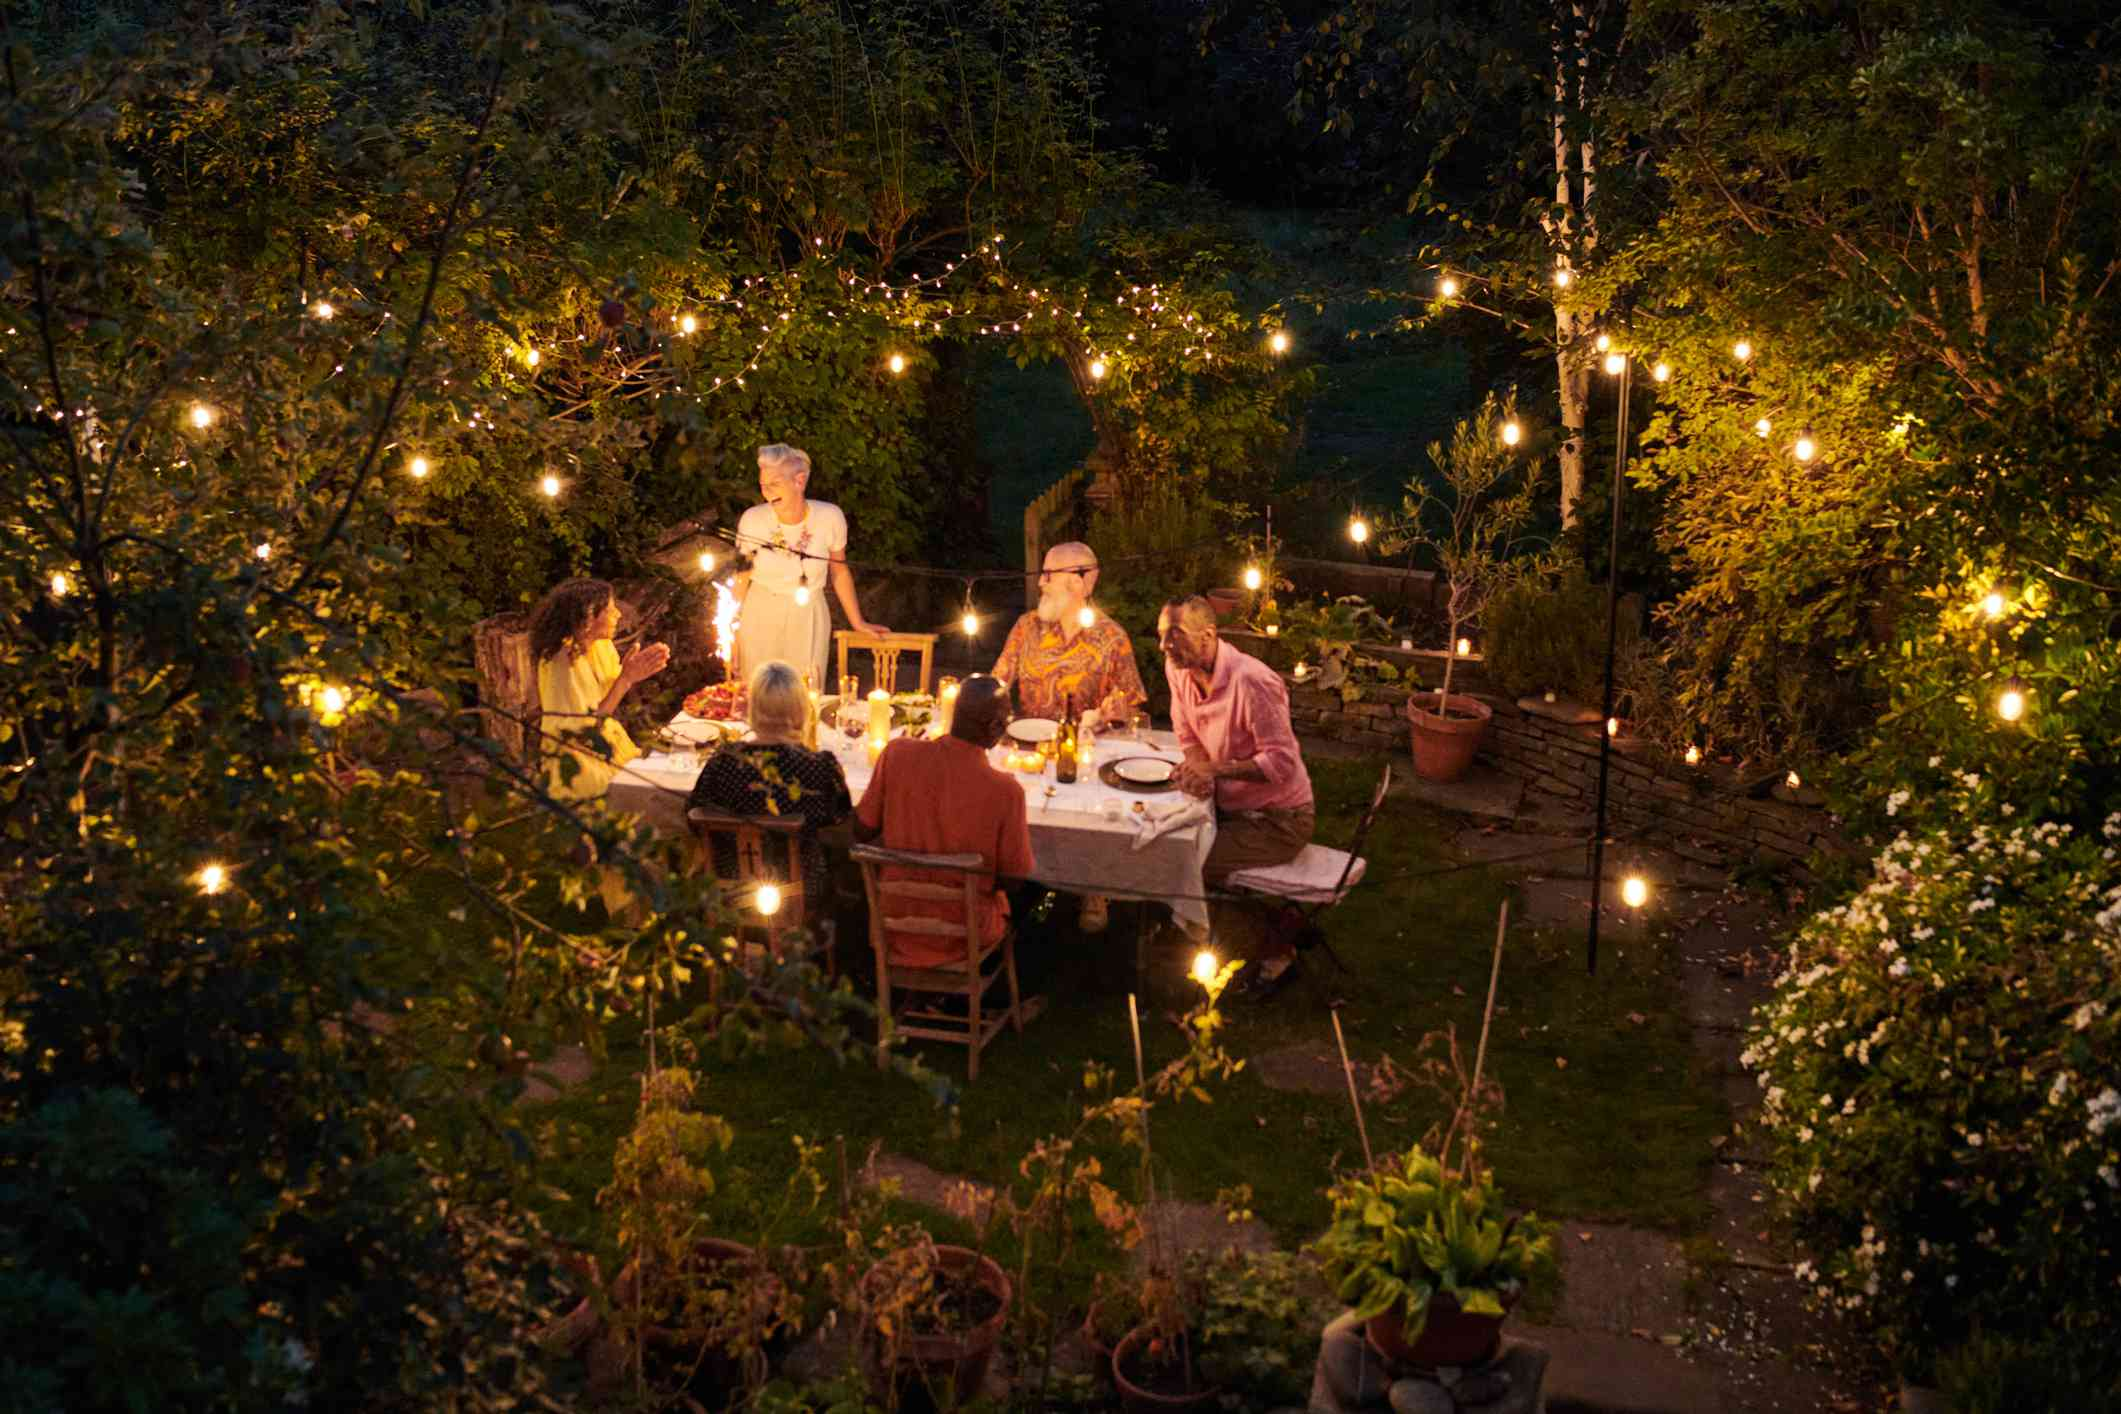 A group of friends at an outdoor dinner party